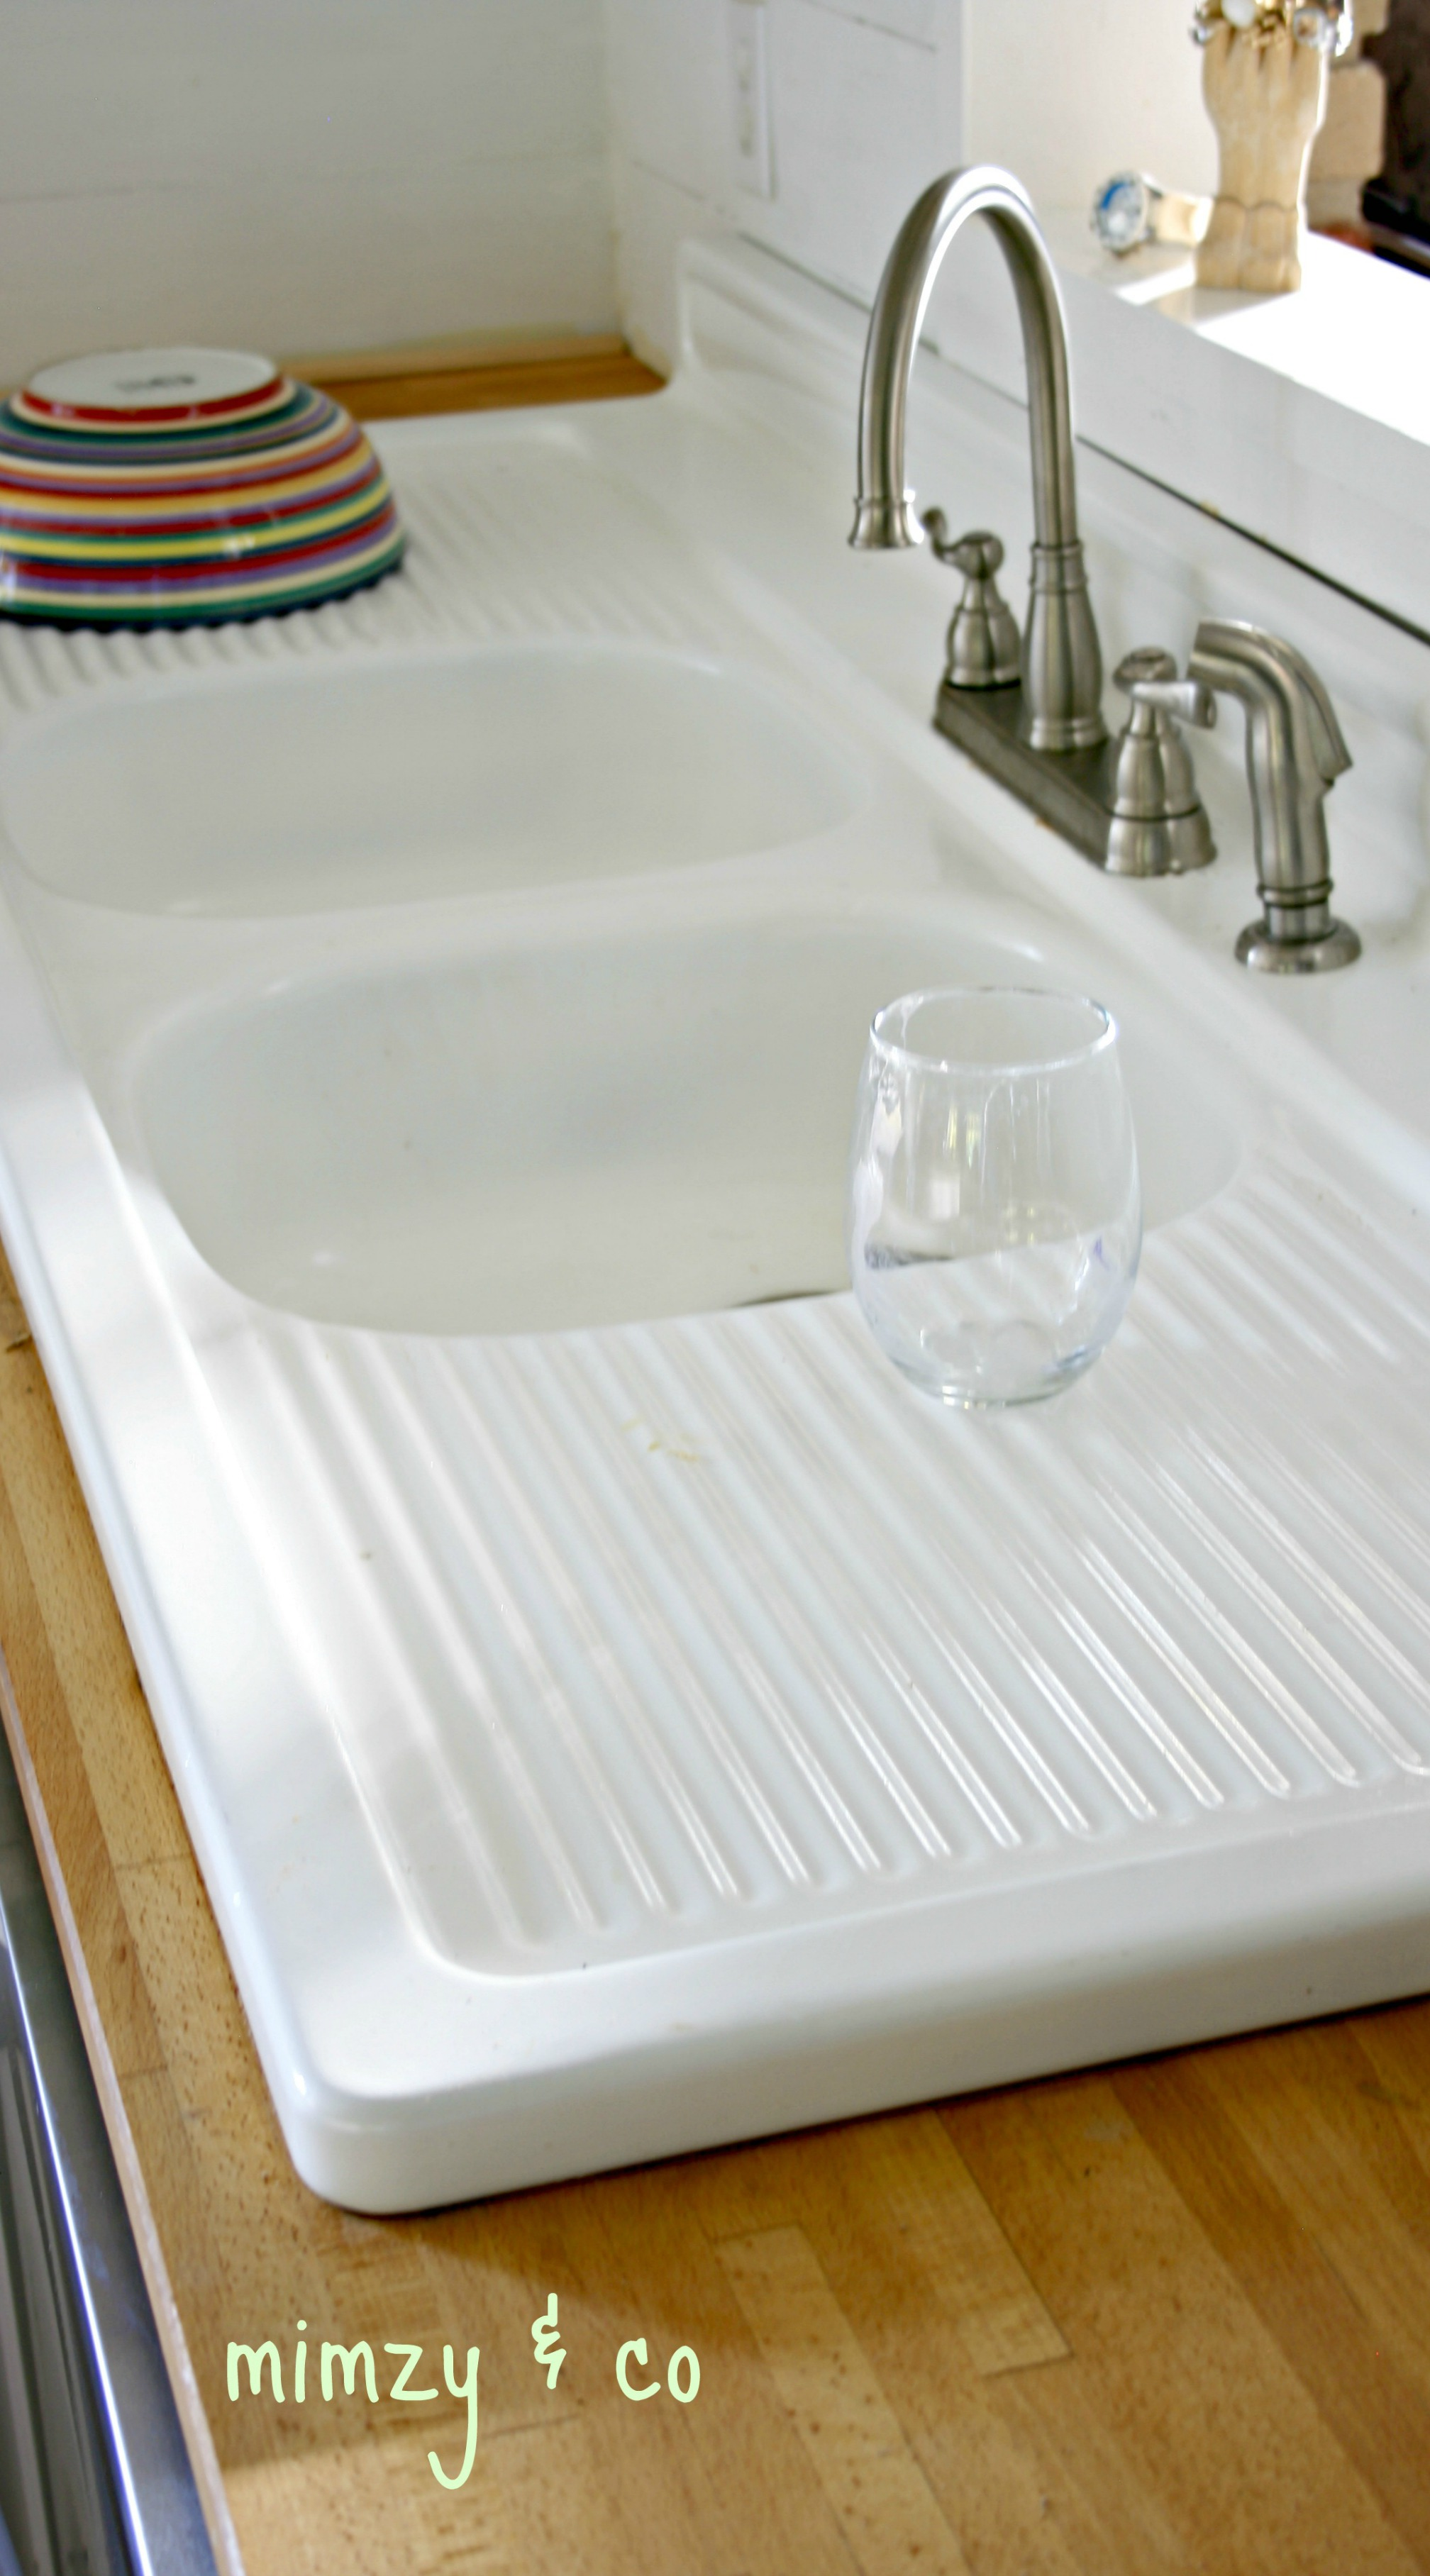 cast iron kitchen sinks outdoors how i refinished my vintage sink mimzy company refinished5